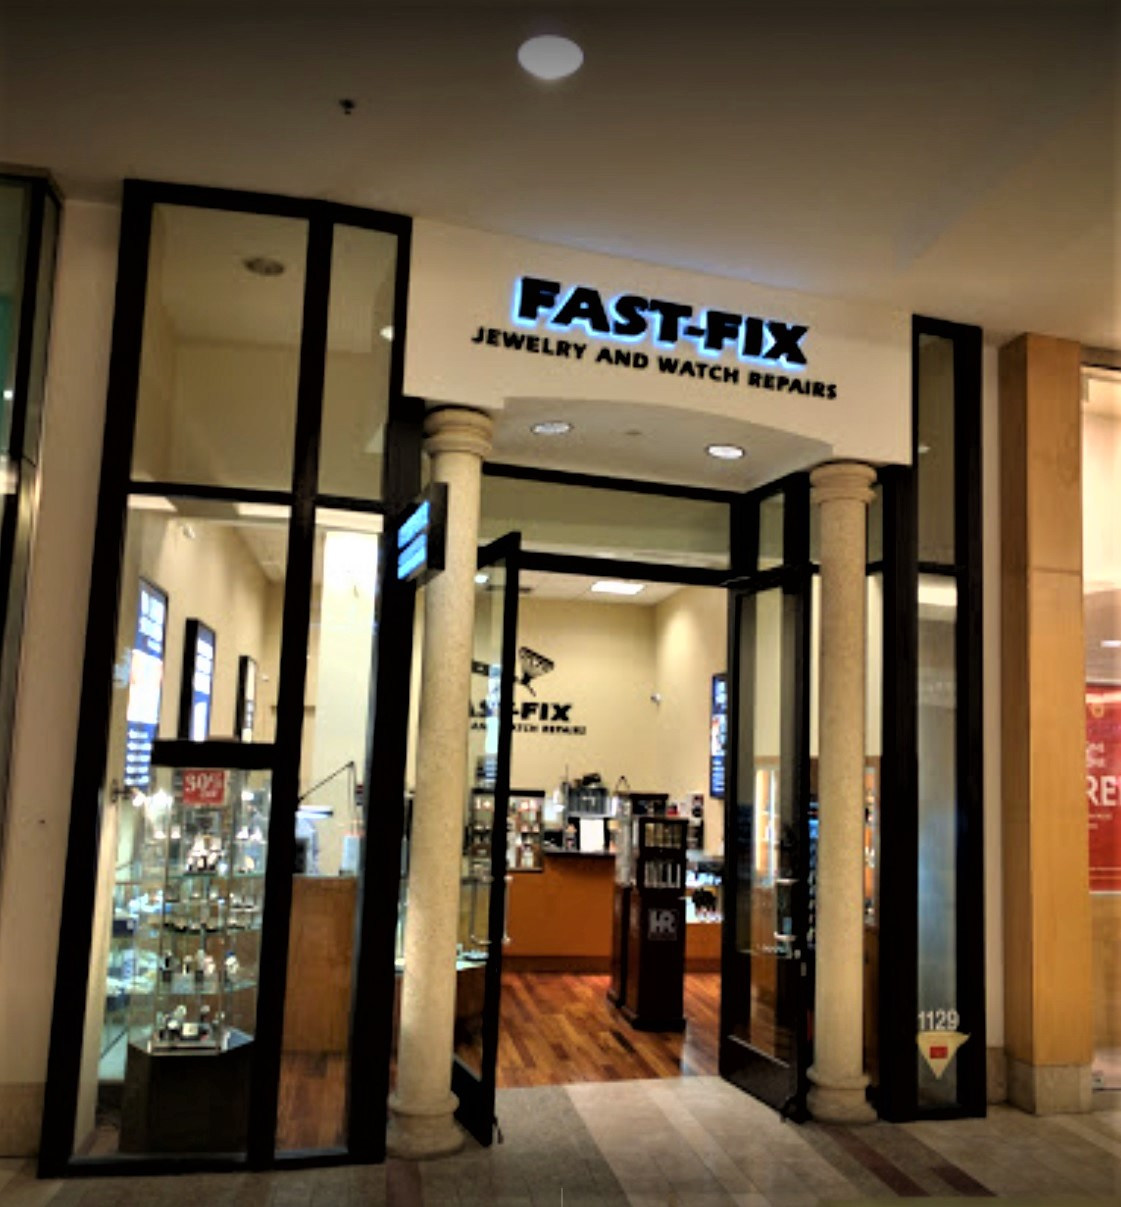 Storefront of Fast-Fix store at South Center Mall. 2 main pillars with logo on top and windows on the sides that let the customer see through the store